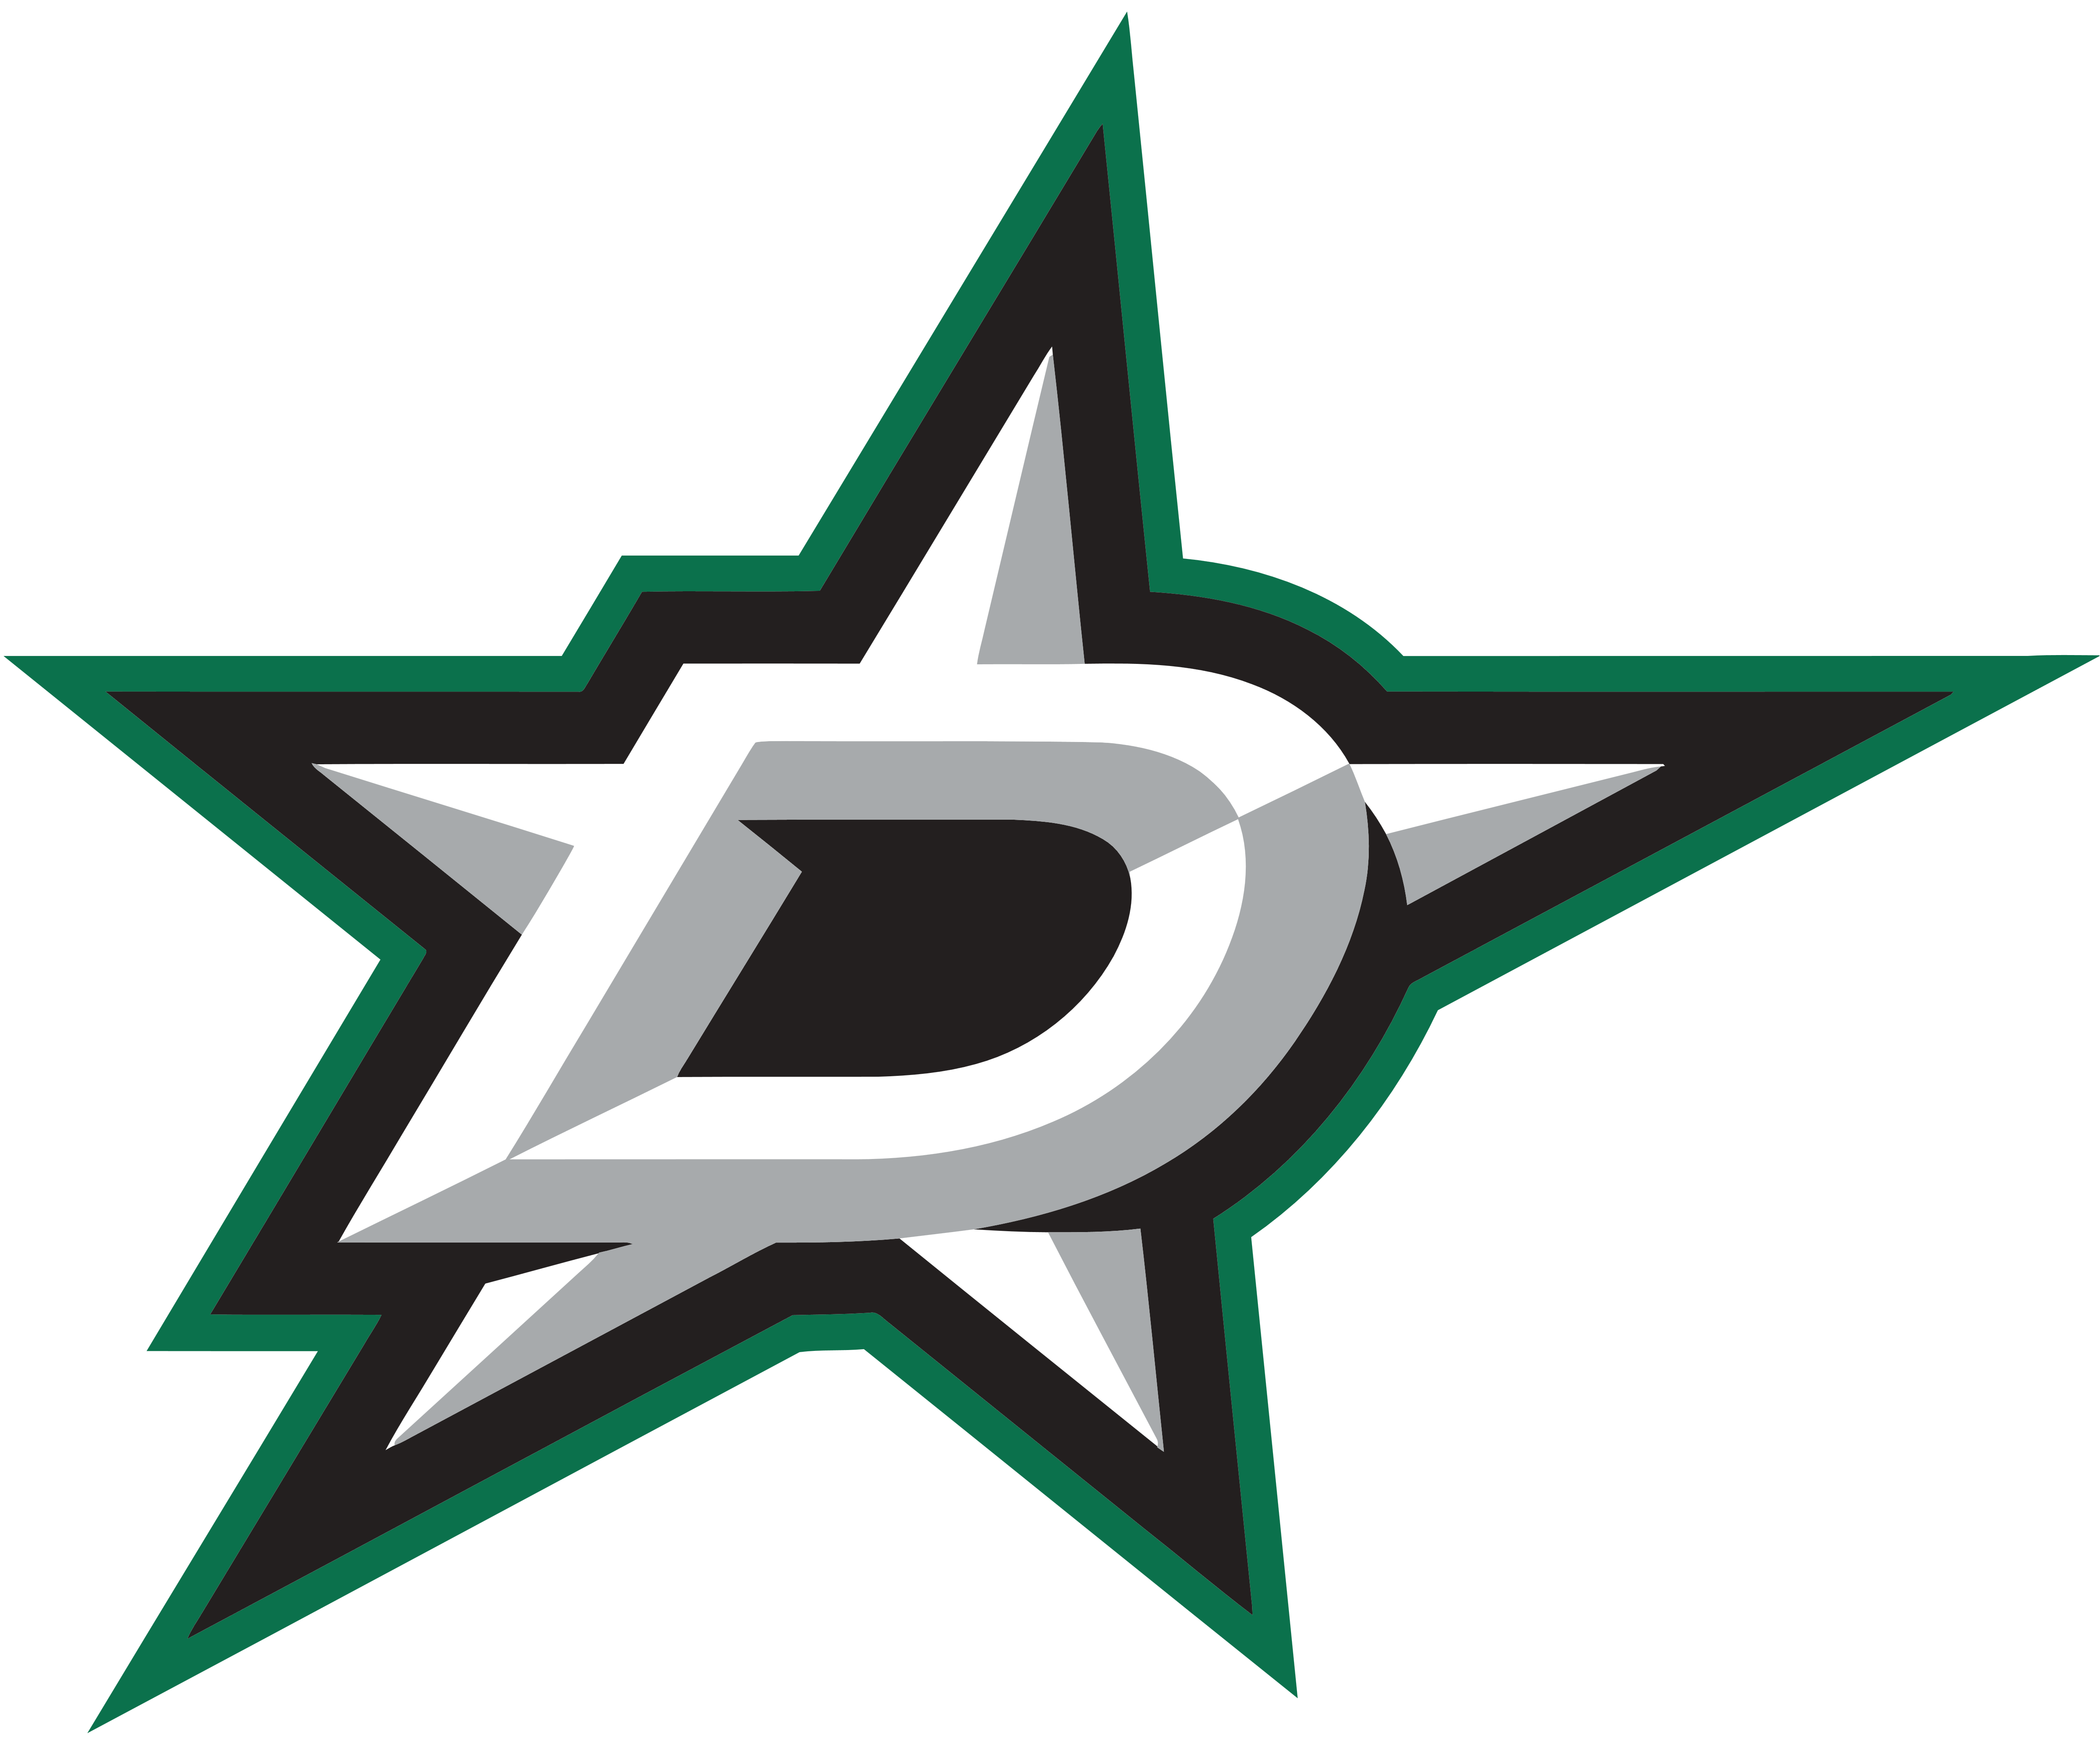 dallas stars � logos download